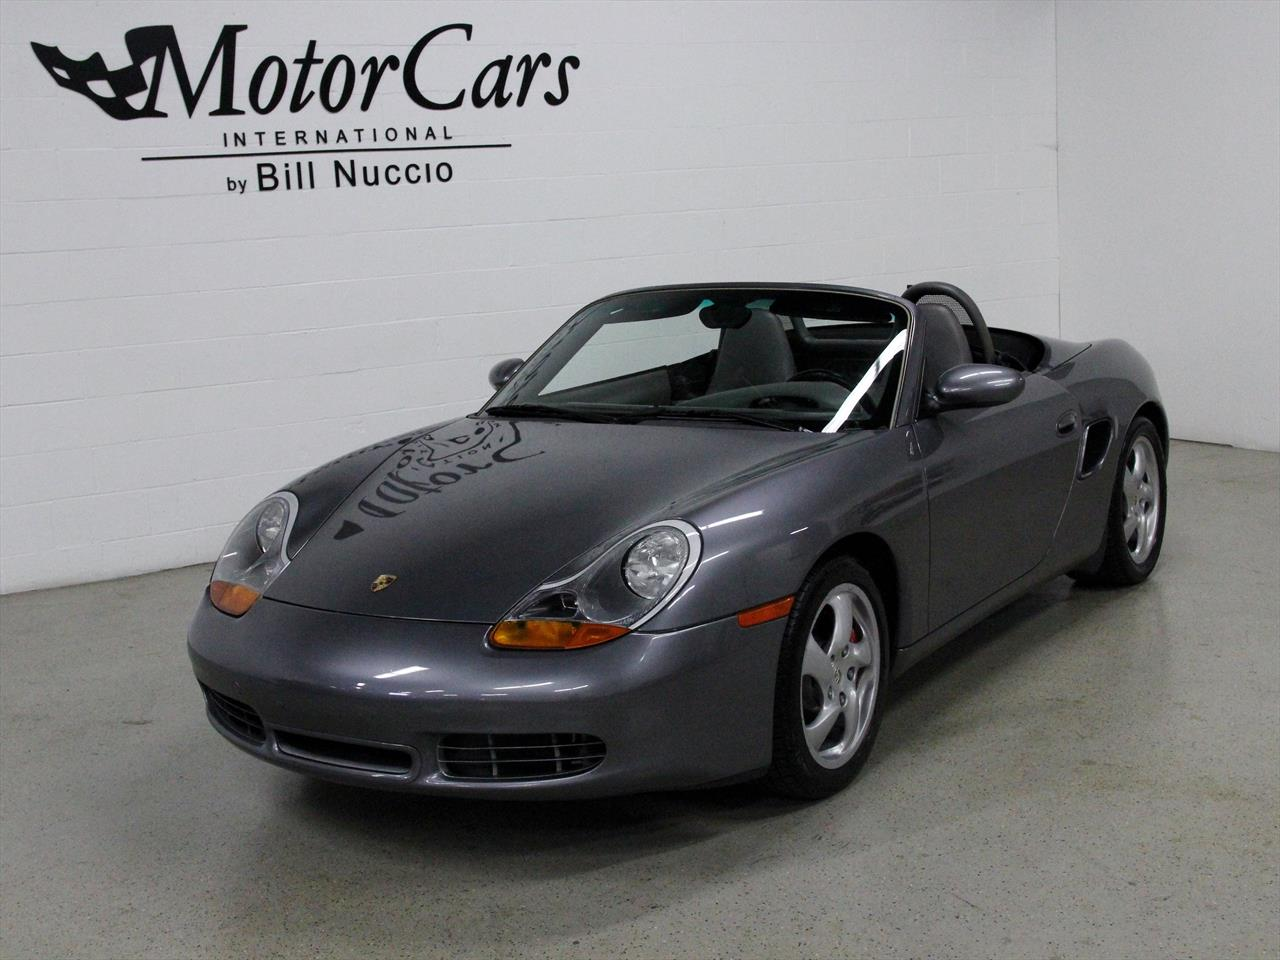 2001 Porsche Boxster S Limited Edition